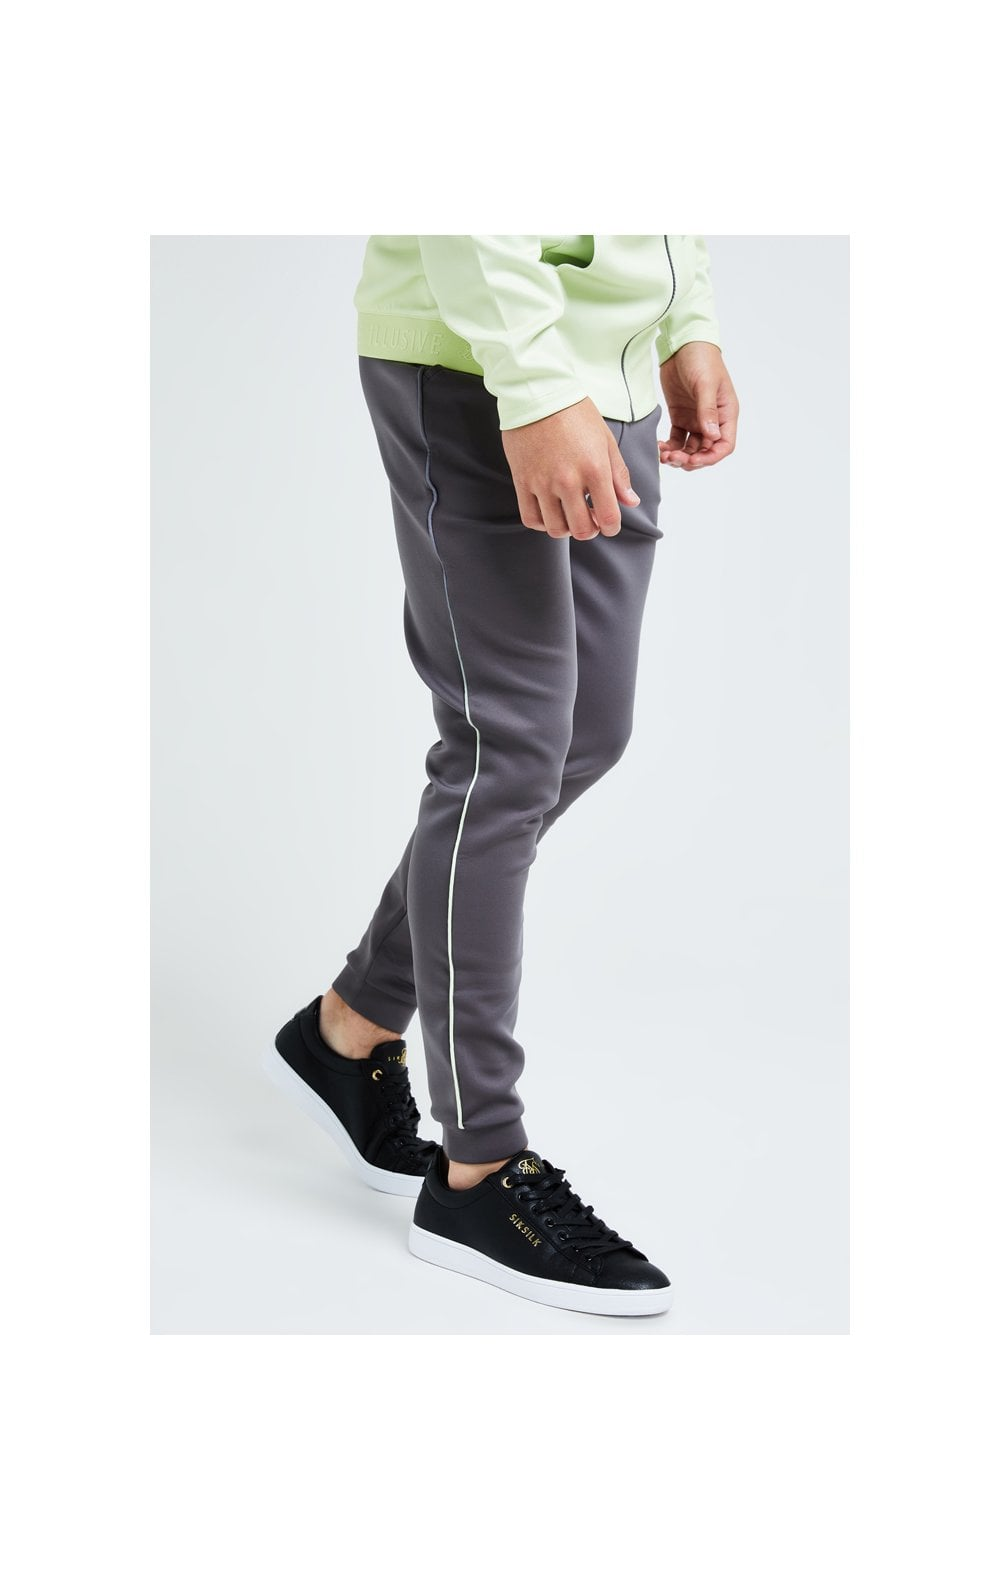 Illusive London Blaze Fade Piping Jogger - Dark Grey & Lime (1)